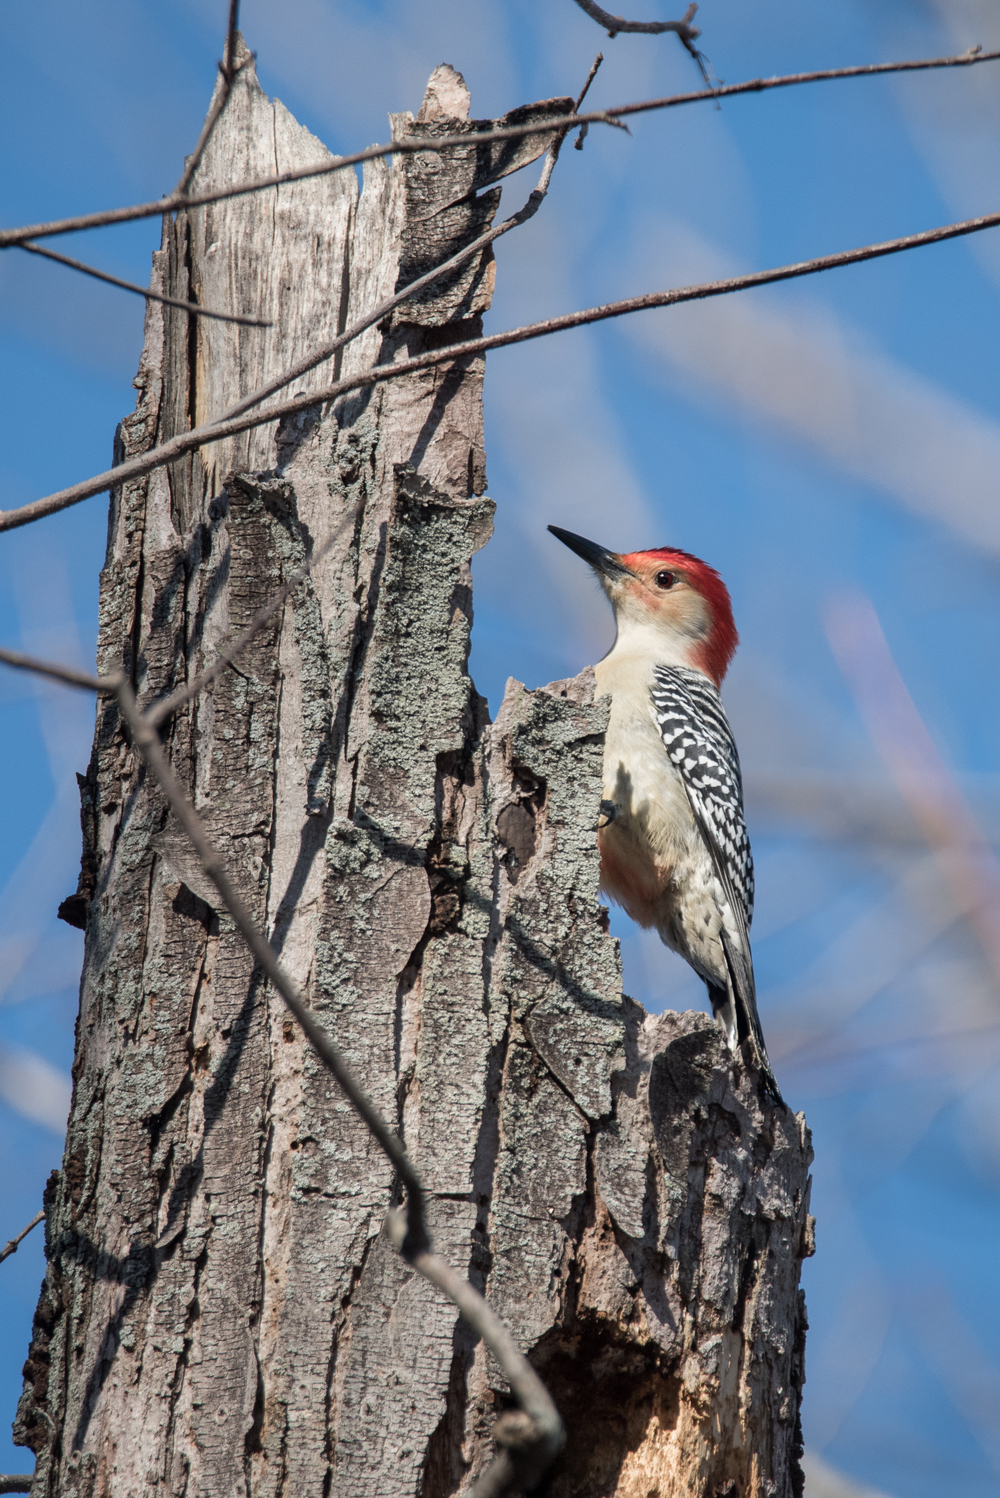 Red-Bellied Woodpecker  Nikon D750 ISO 800 600mm f/7.1 1/1250 sec.